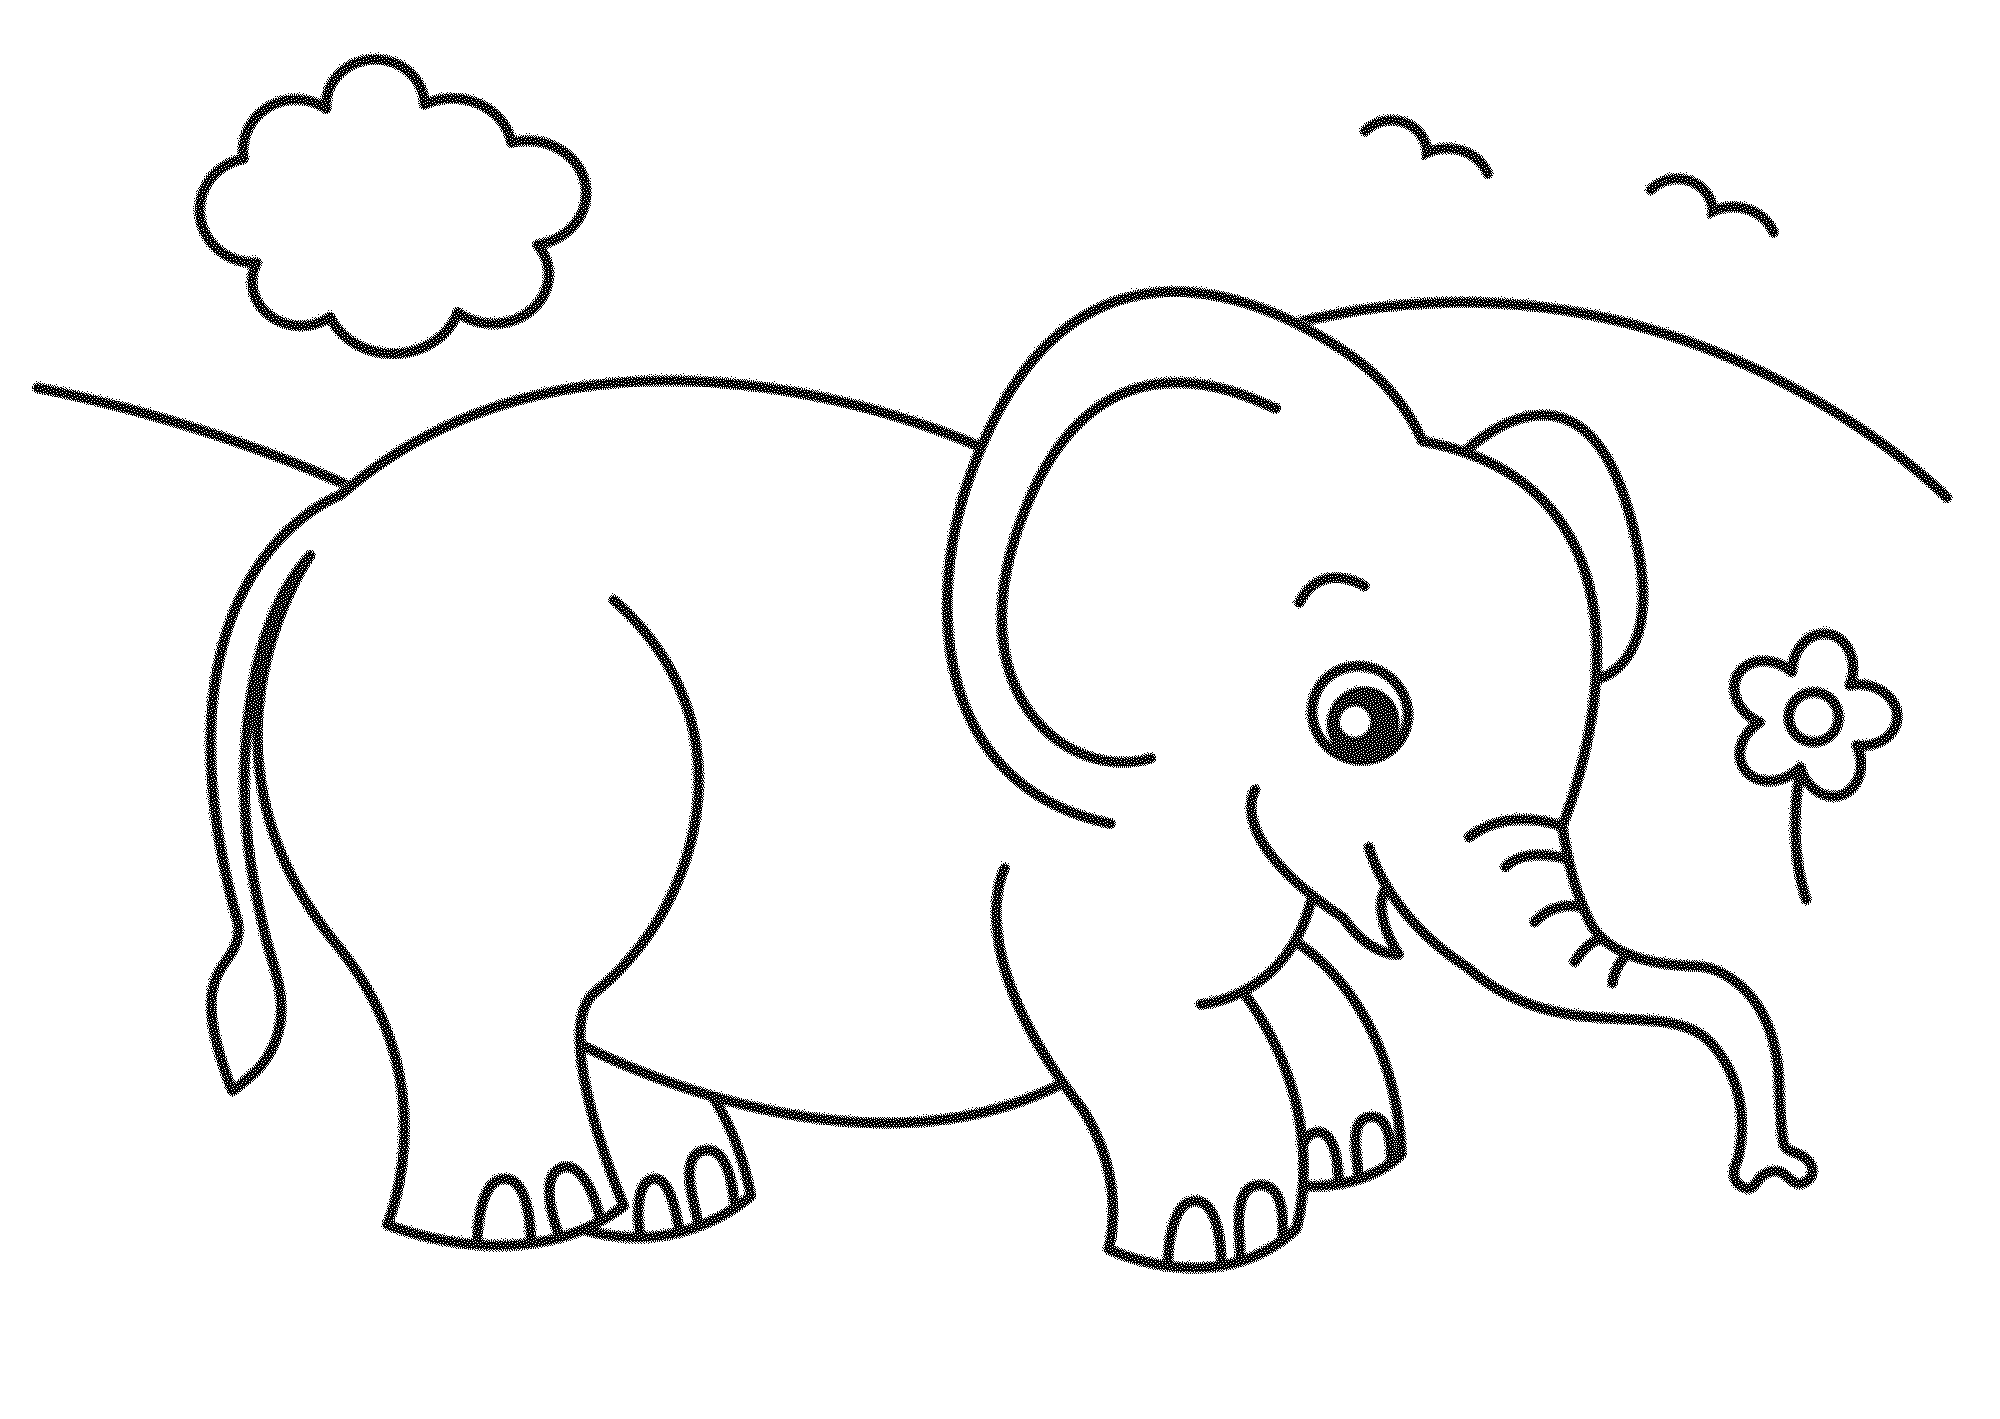 free printable elephant coloring pages elephant coloring pages printable free printable kids printable free coloring elephant pages